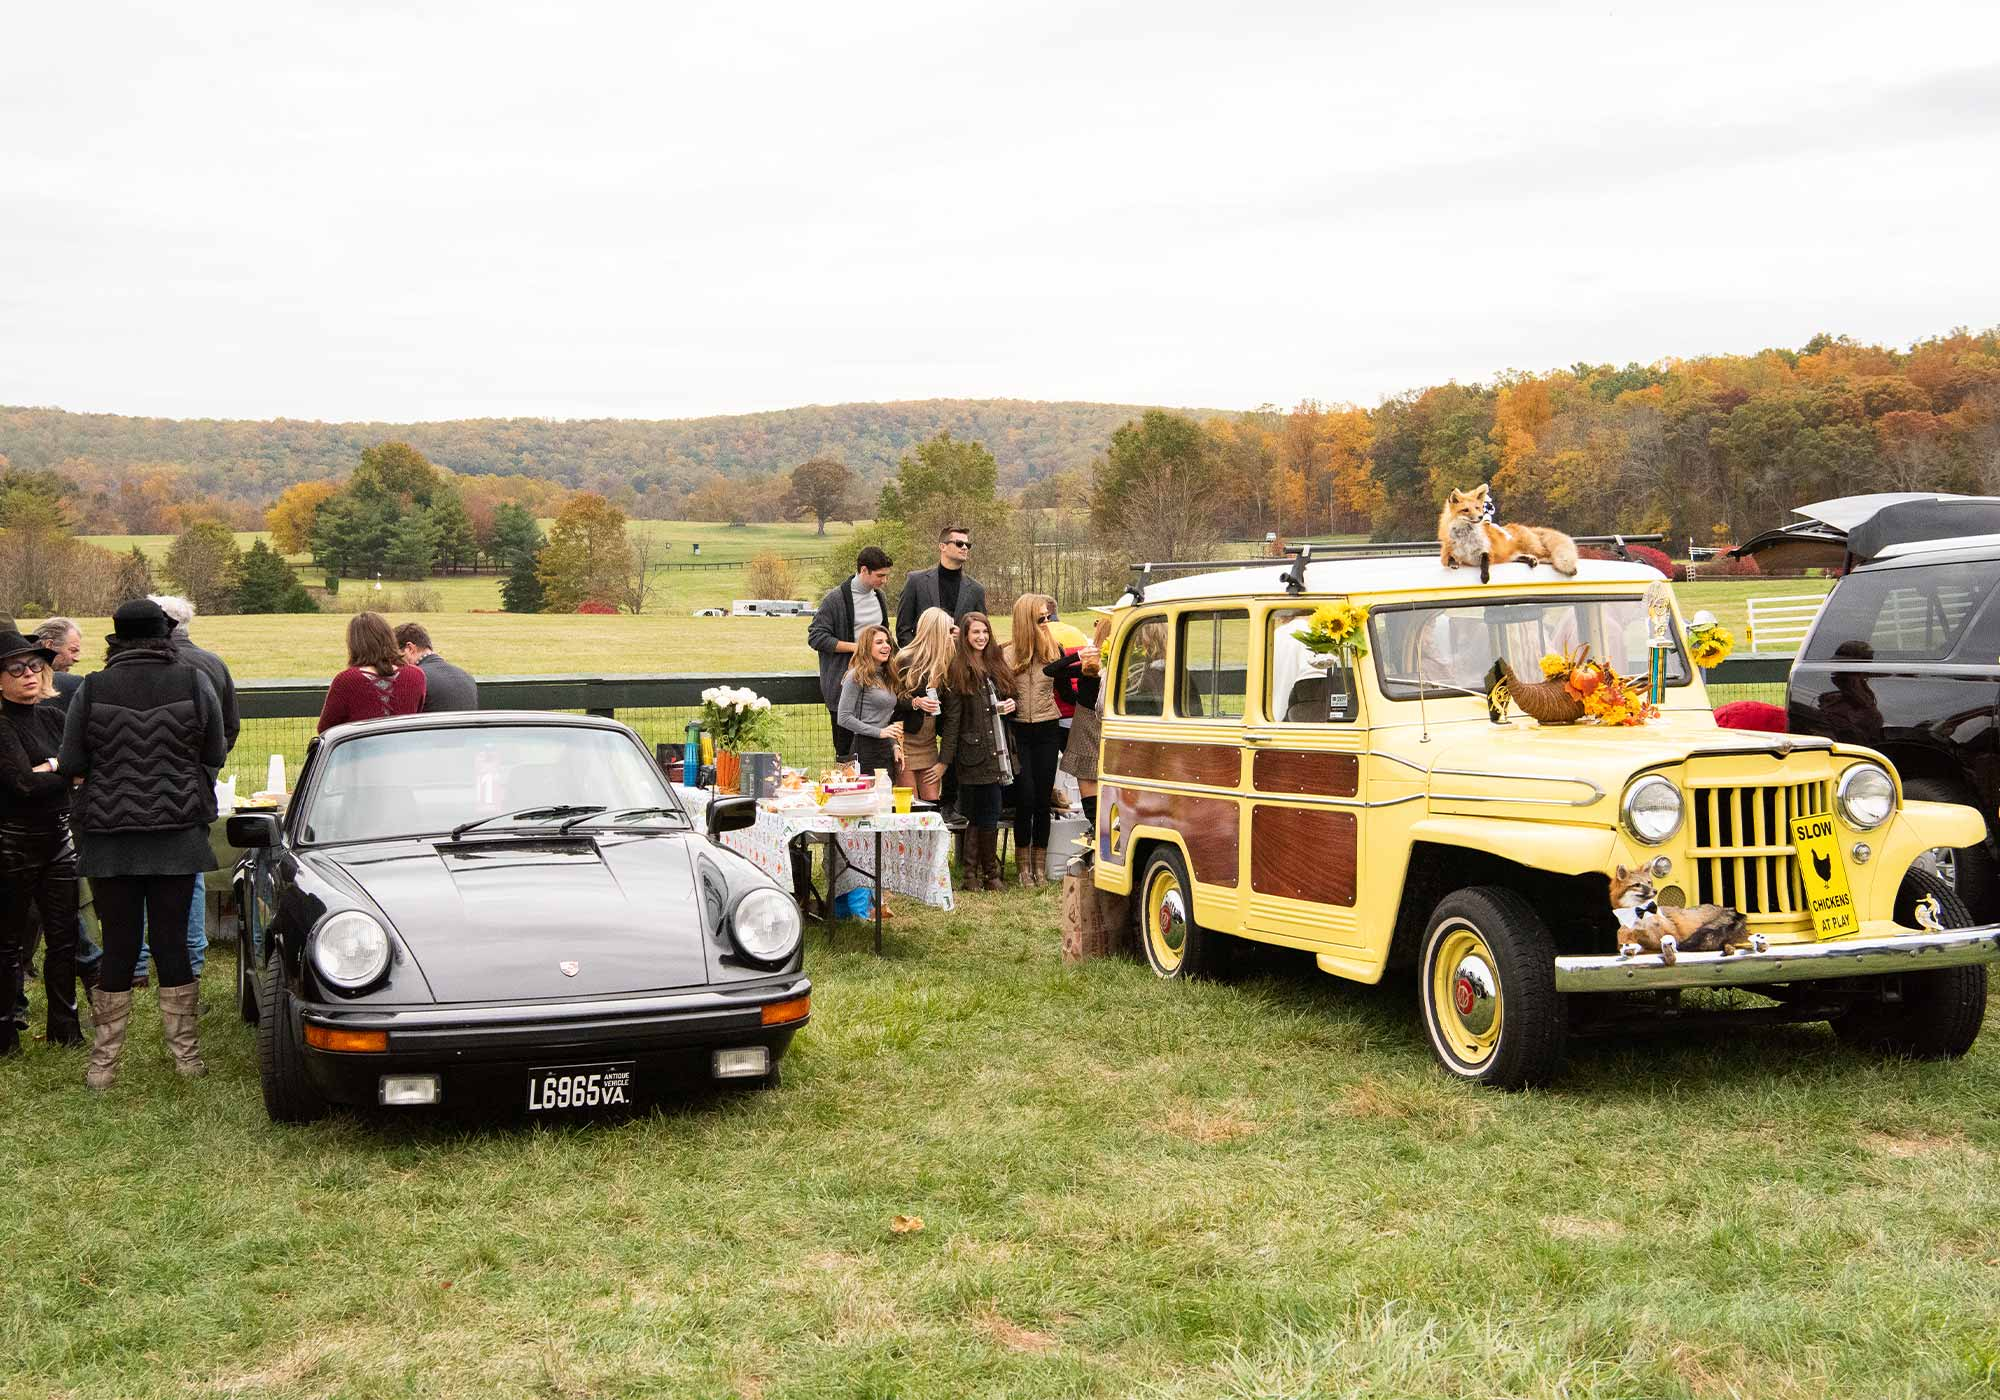 Virginia Gold Cup cars, Image: © Wine & Country Life